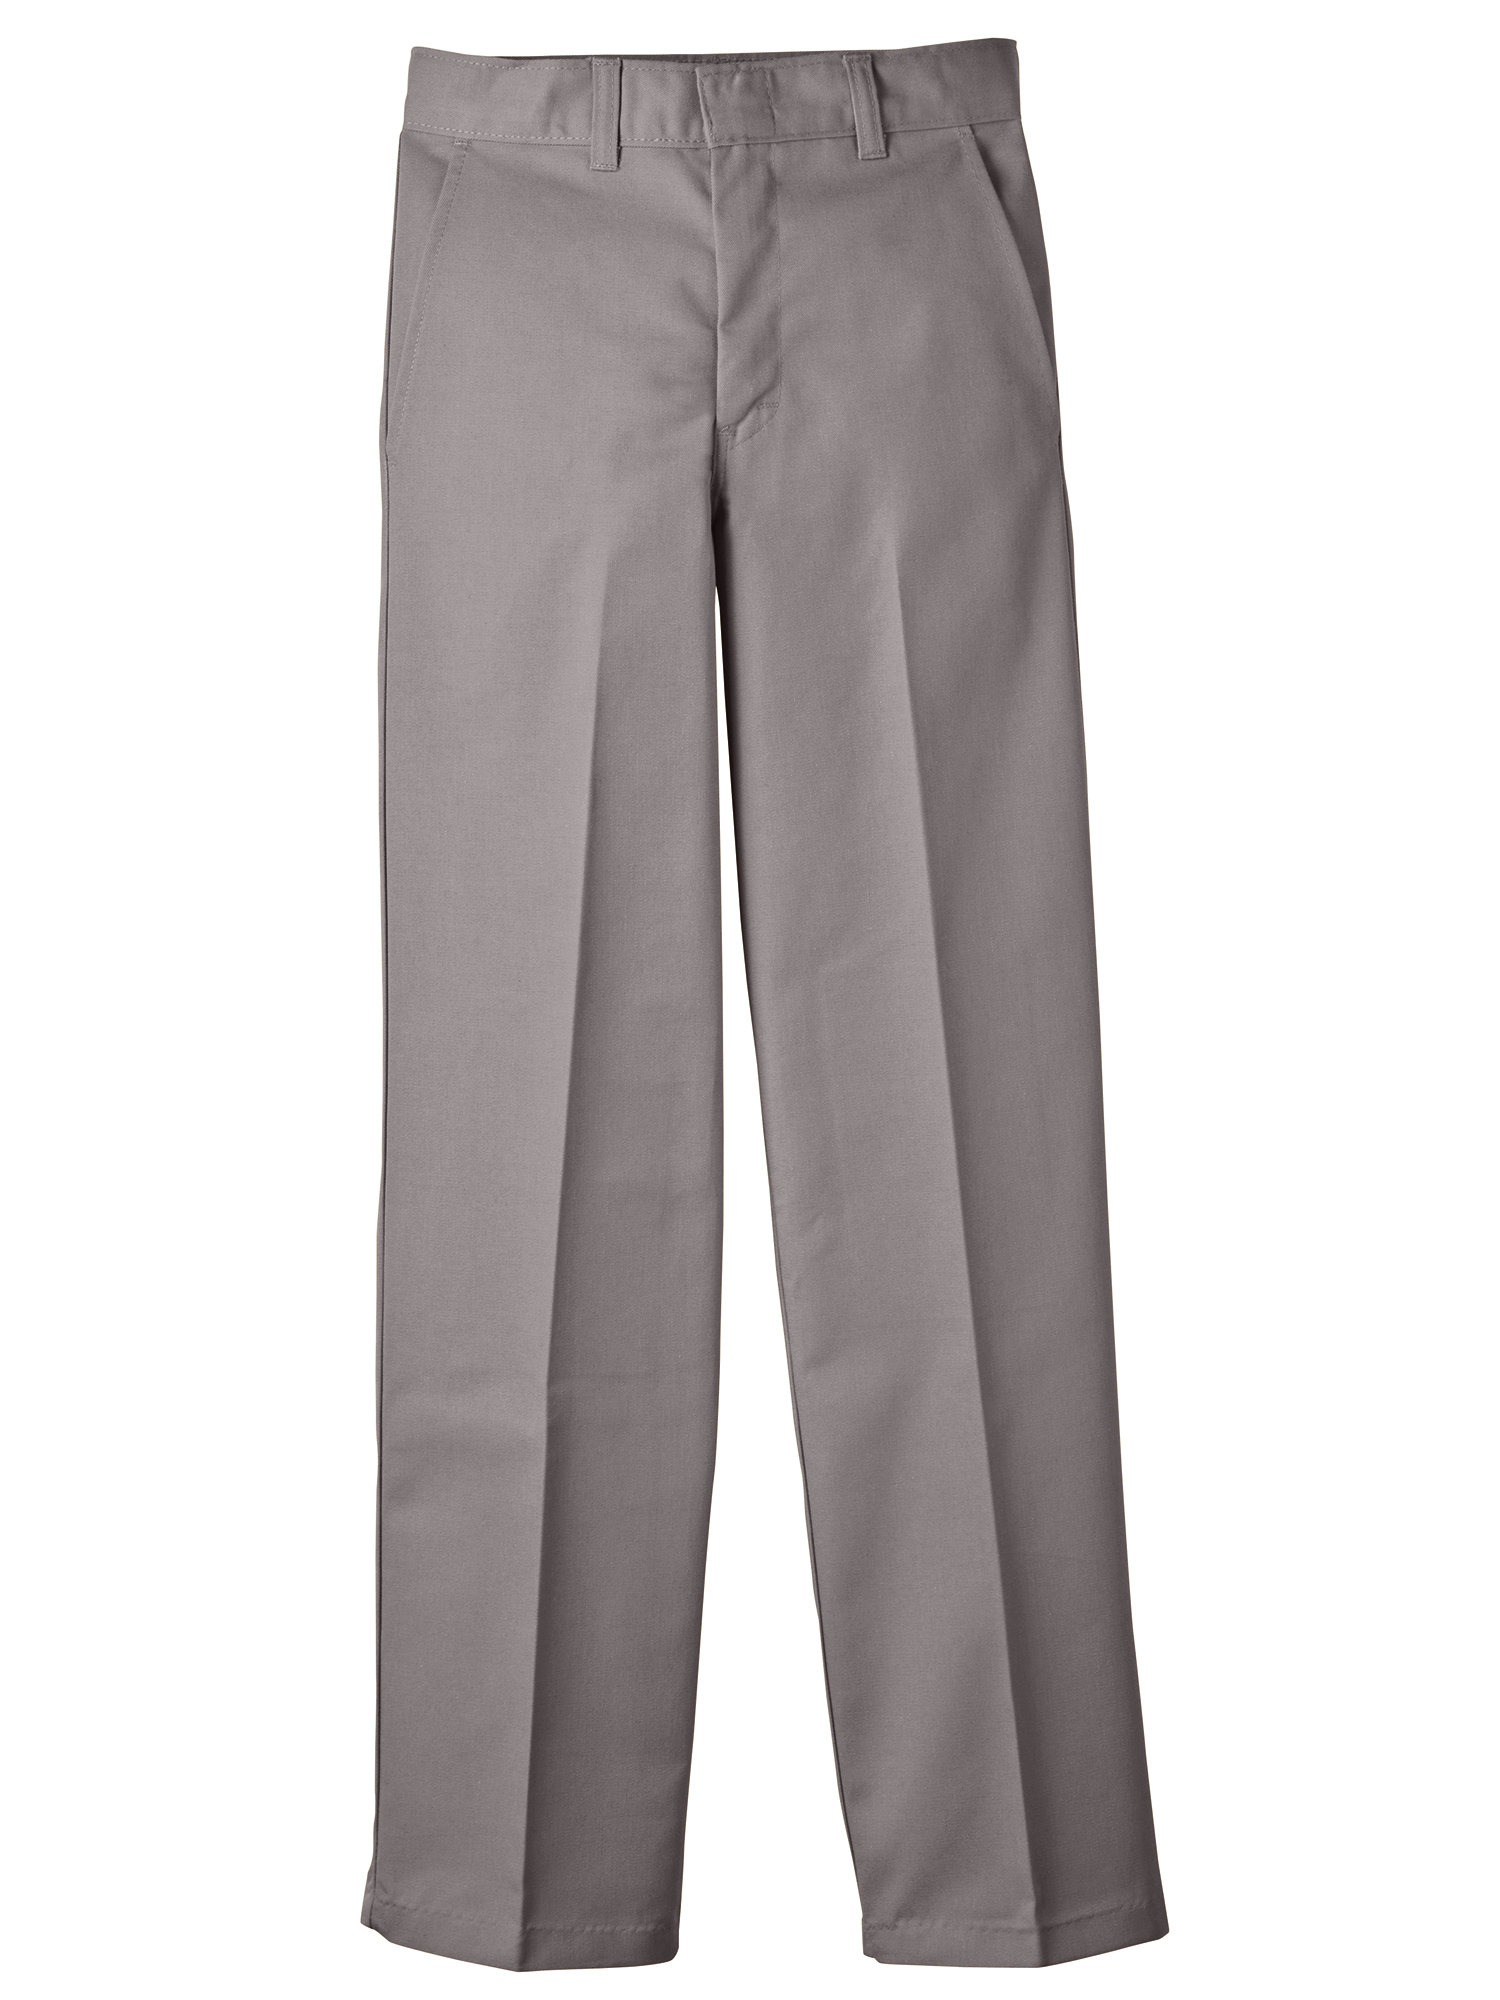 Boys' Classic Fit Uniform Straight Leg Flat Front Pants (Husky Boys)